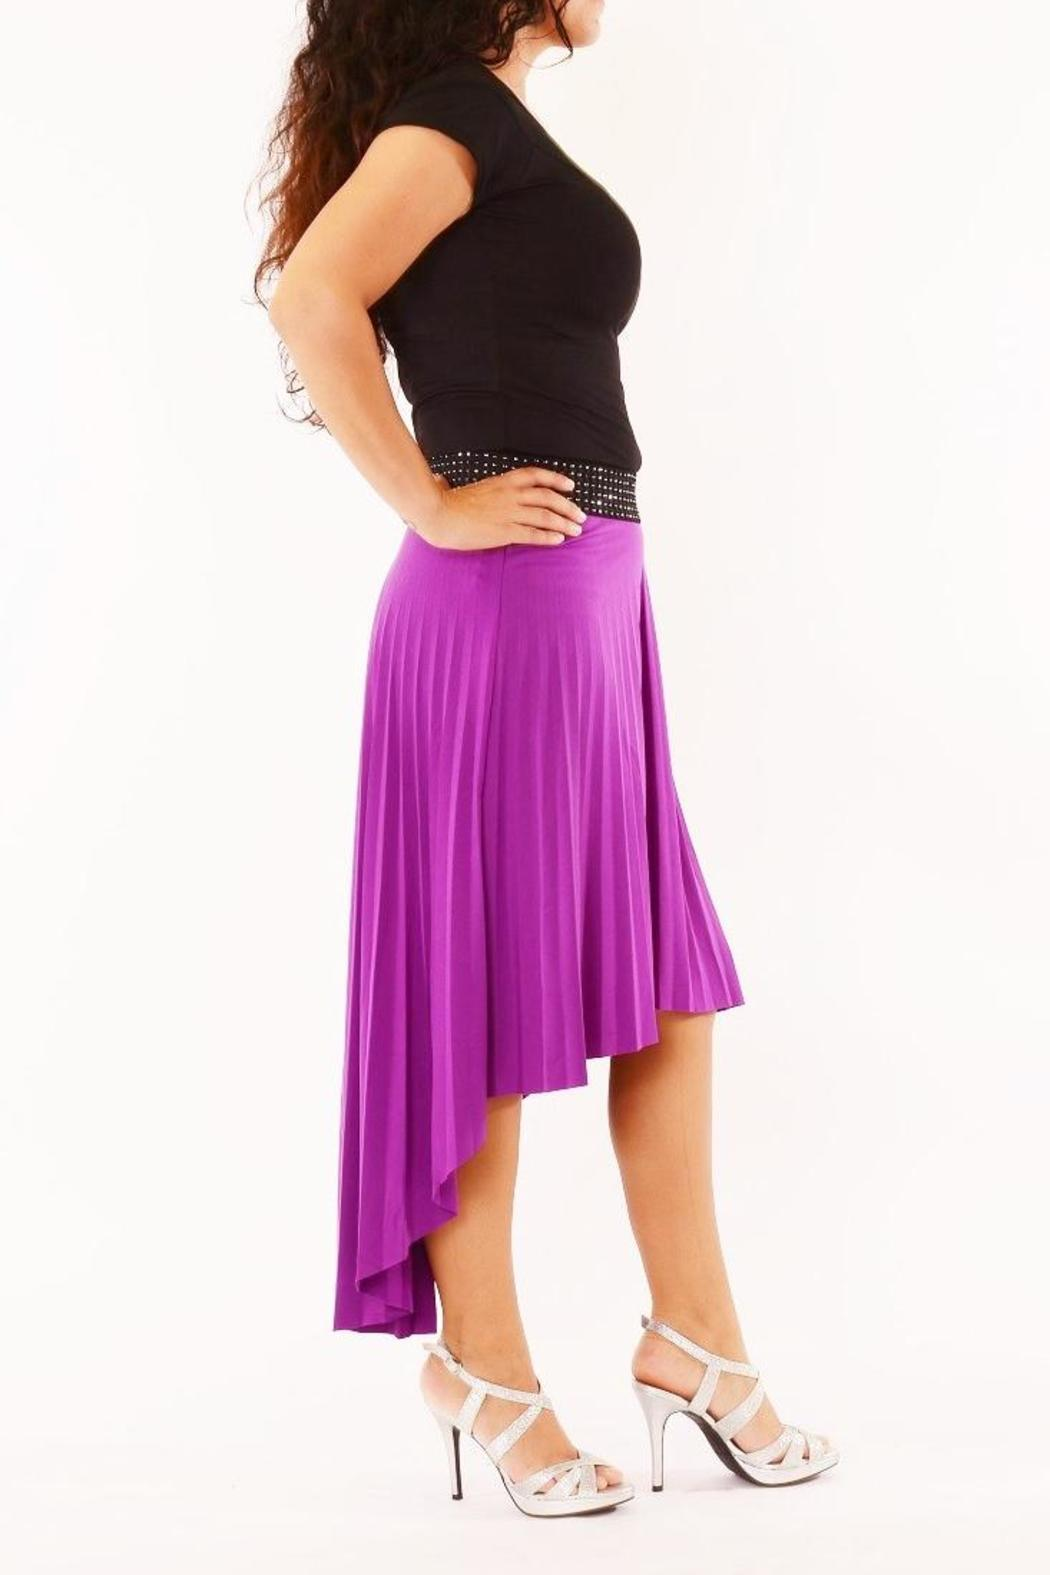 jon hi low pleated skirt from indiana by uptown